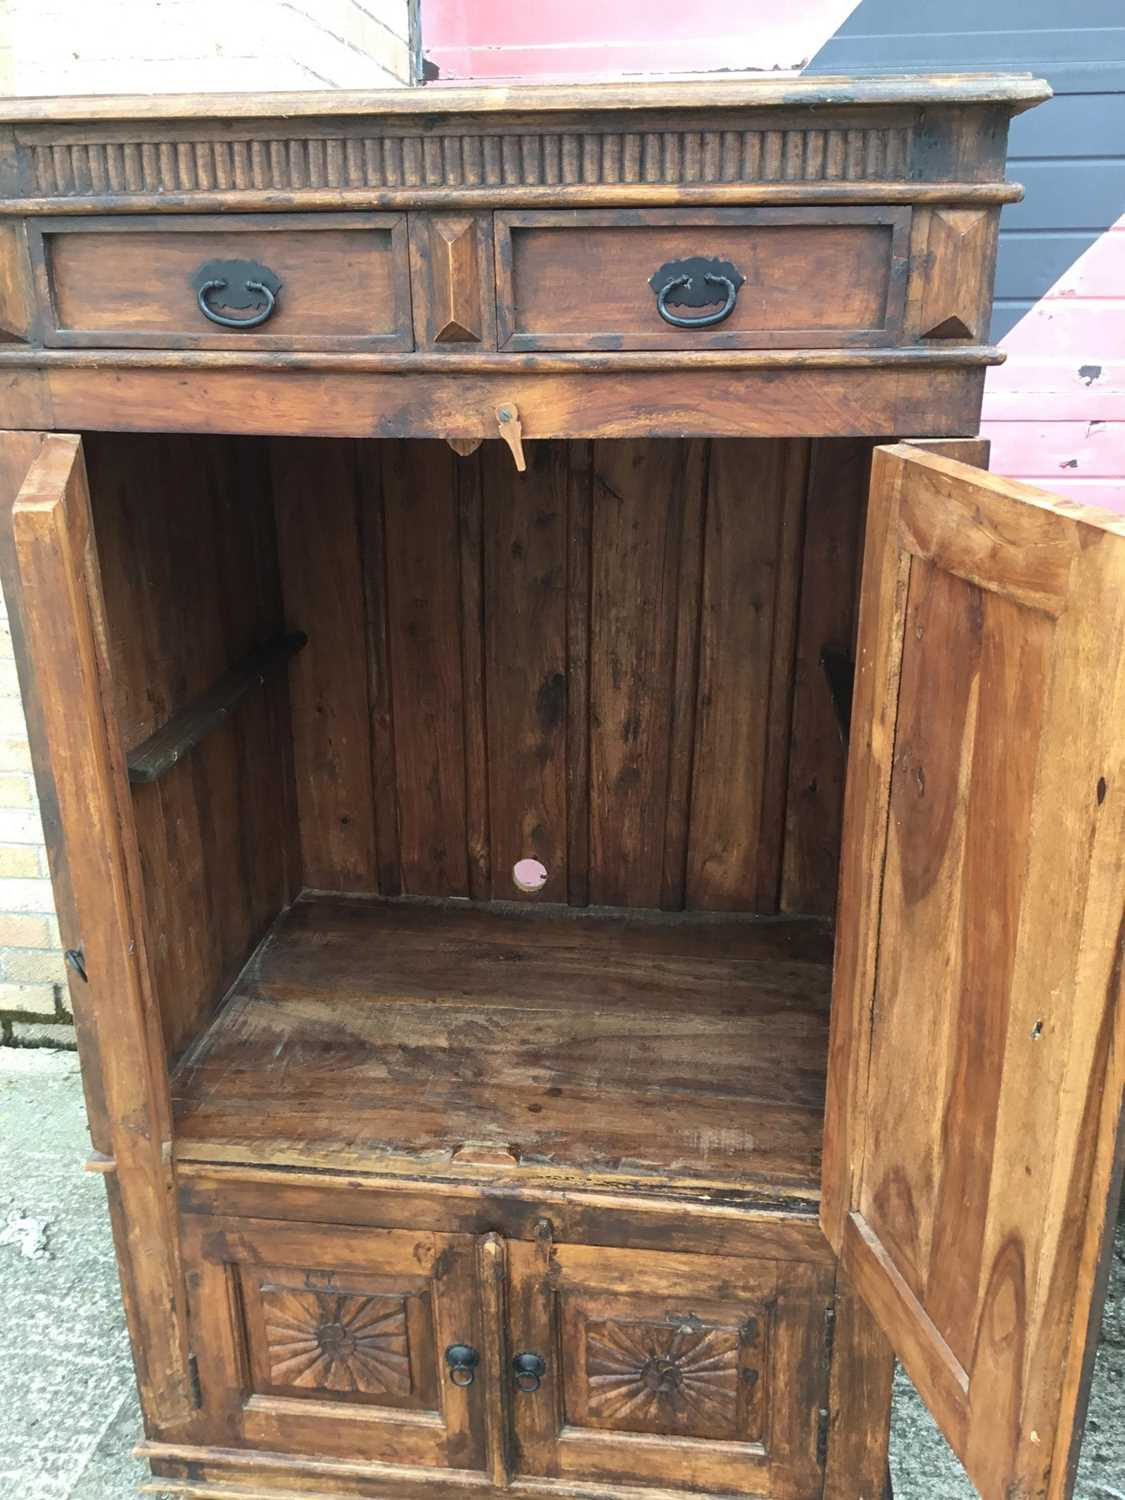 Eastern cupboard with two top drawers and four fluted and panelled doors below 89 cm wide, 163 cm hi - Image 3 of 3